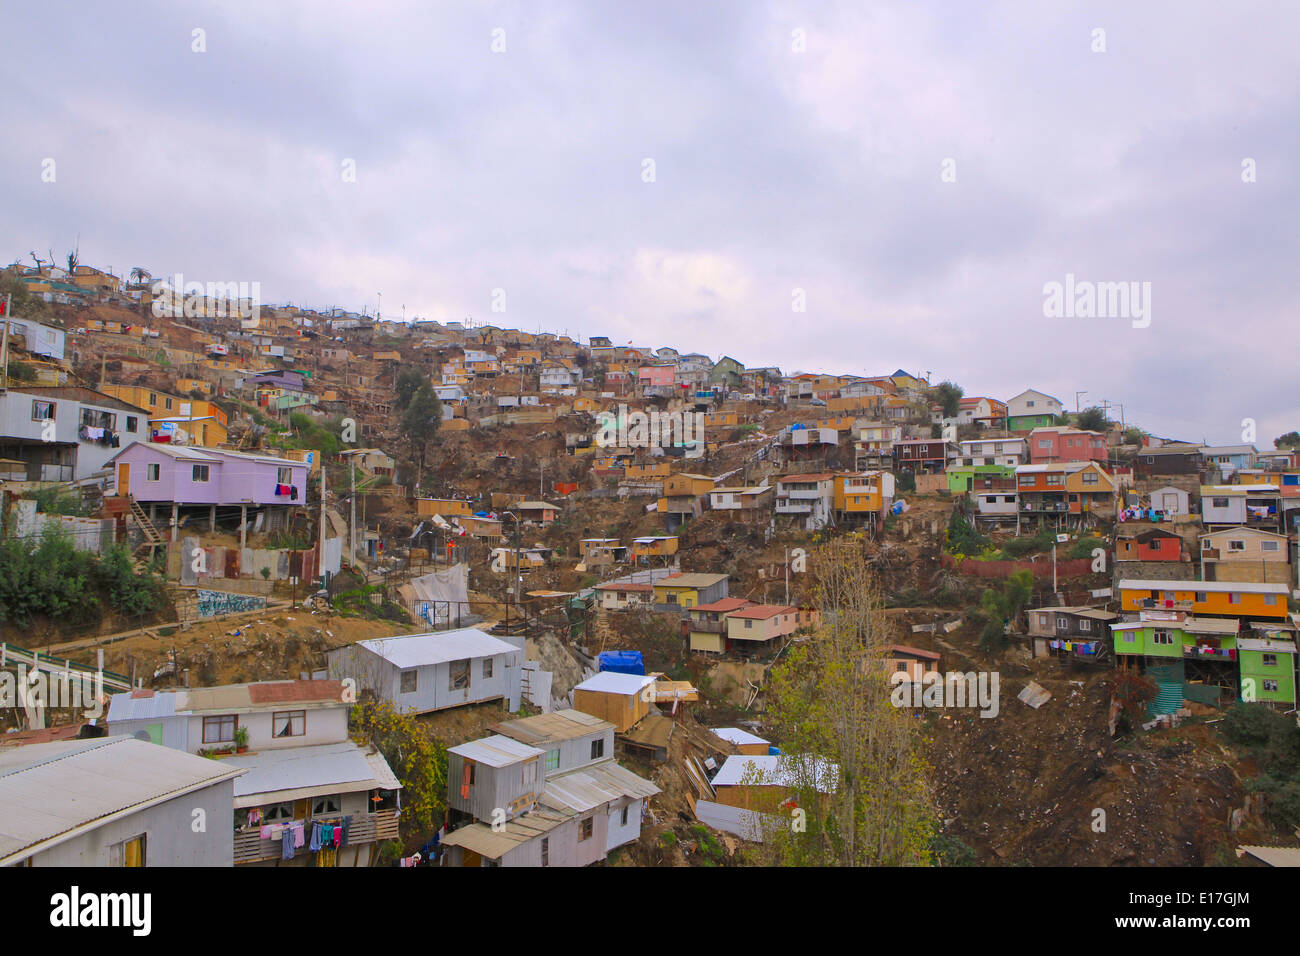 Valparaiso, after the big fire, rebuilding people`s houses  Chile 2014 - Stock Image